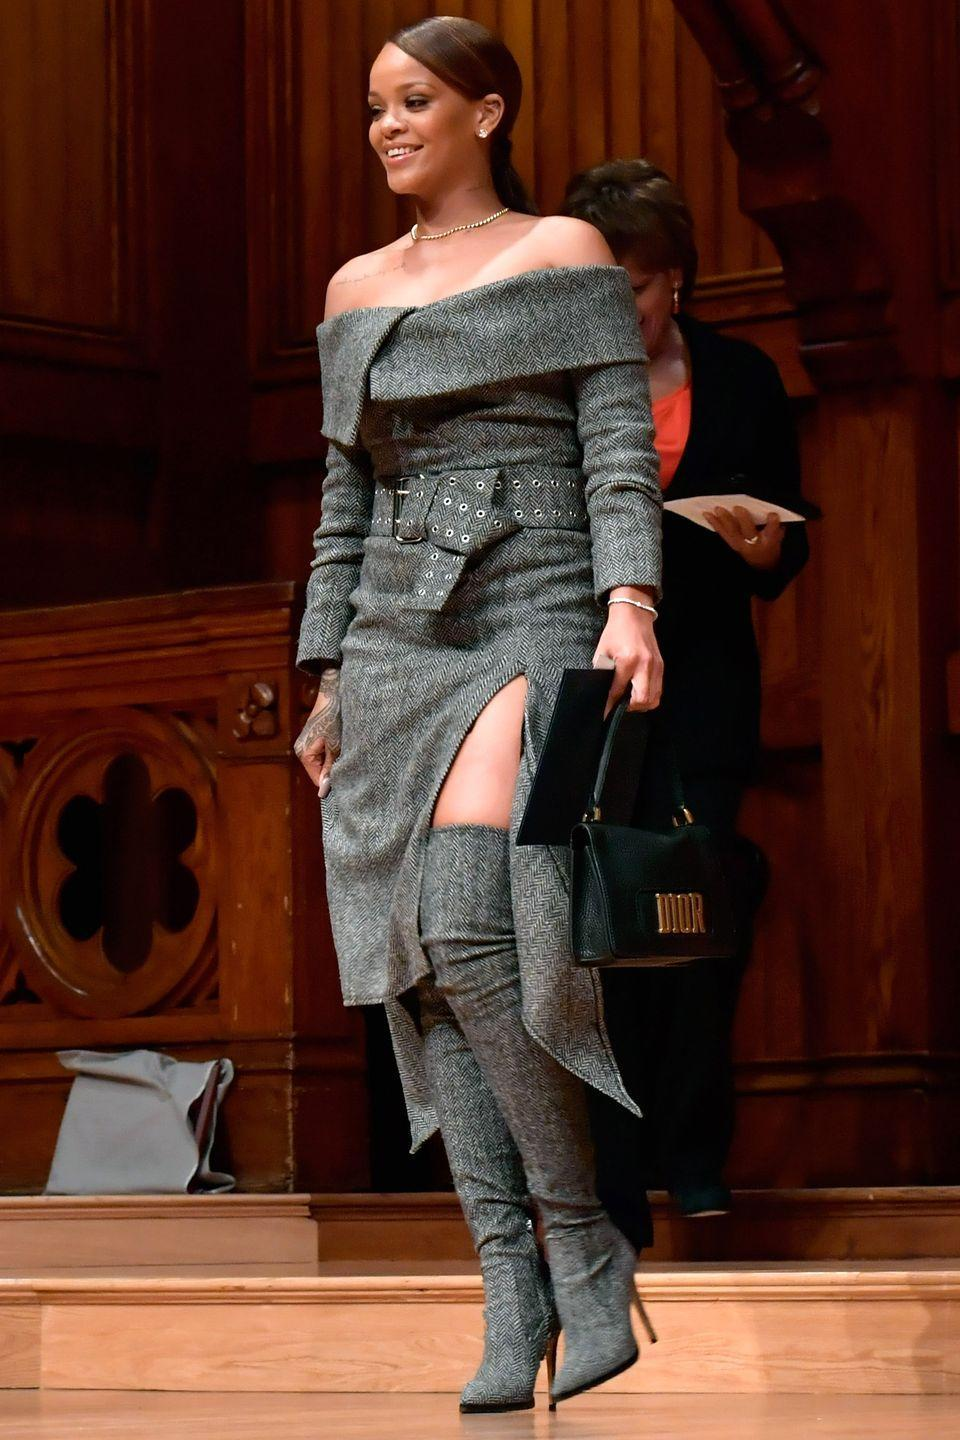 <p>In a Monse tweed dress, over-the-knee boots and Dior bag while receiving the 2017 Harvard University Humanitarian of the Year Award.</p>